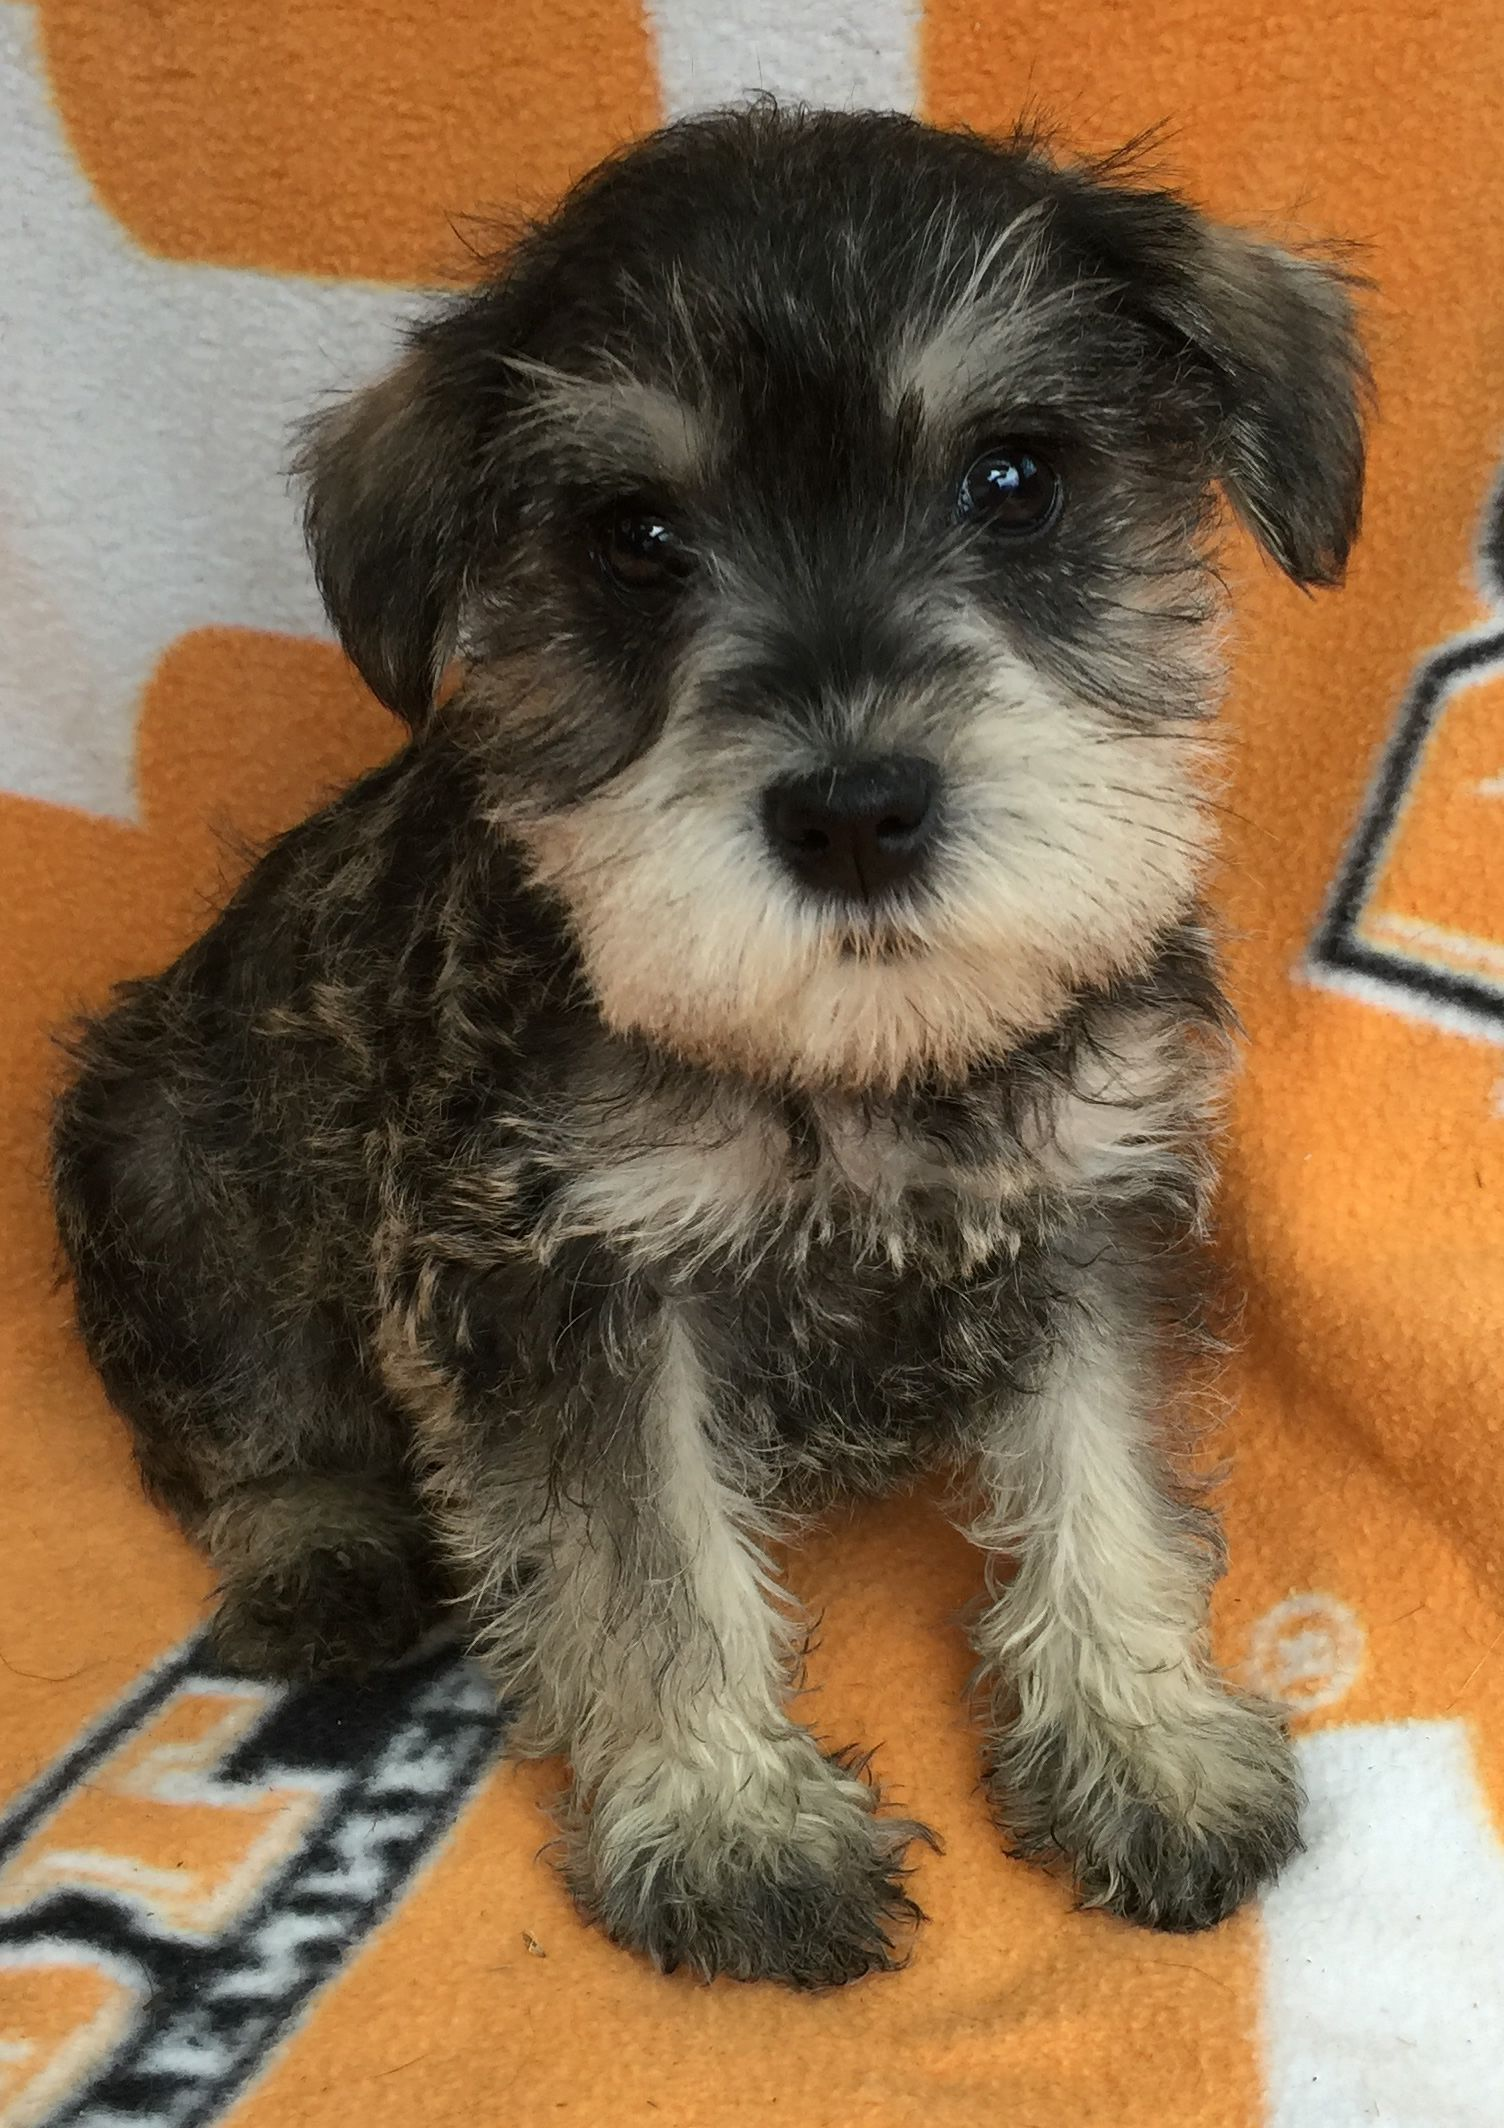 Miniature Schnauzer Puppies For Sale Salt And Pepper Color Schnauzer Puppy Miniature Schnauzer Puppies Miniature Schnauzer